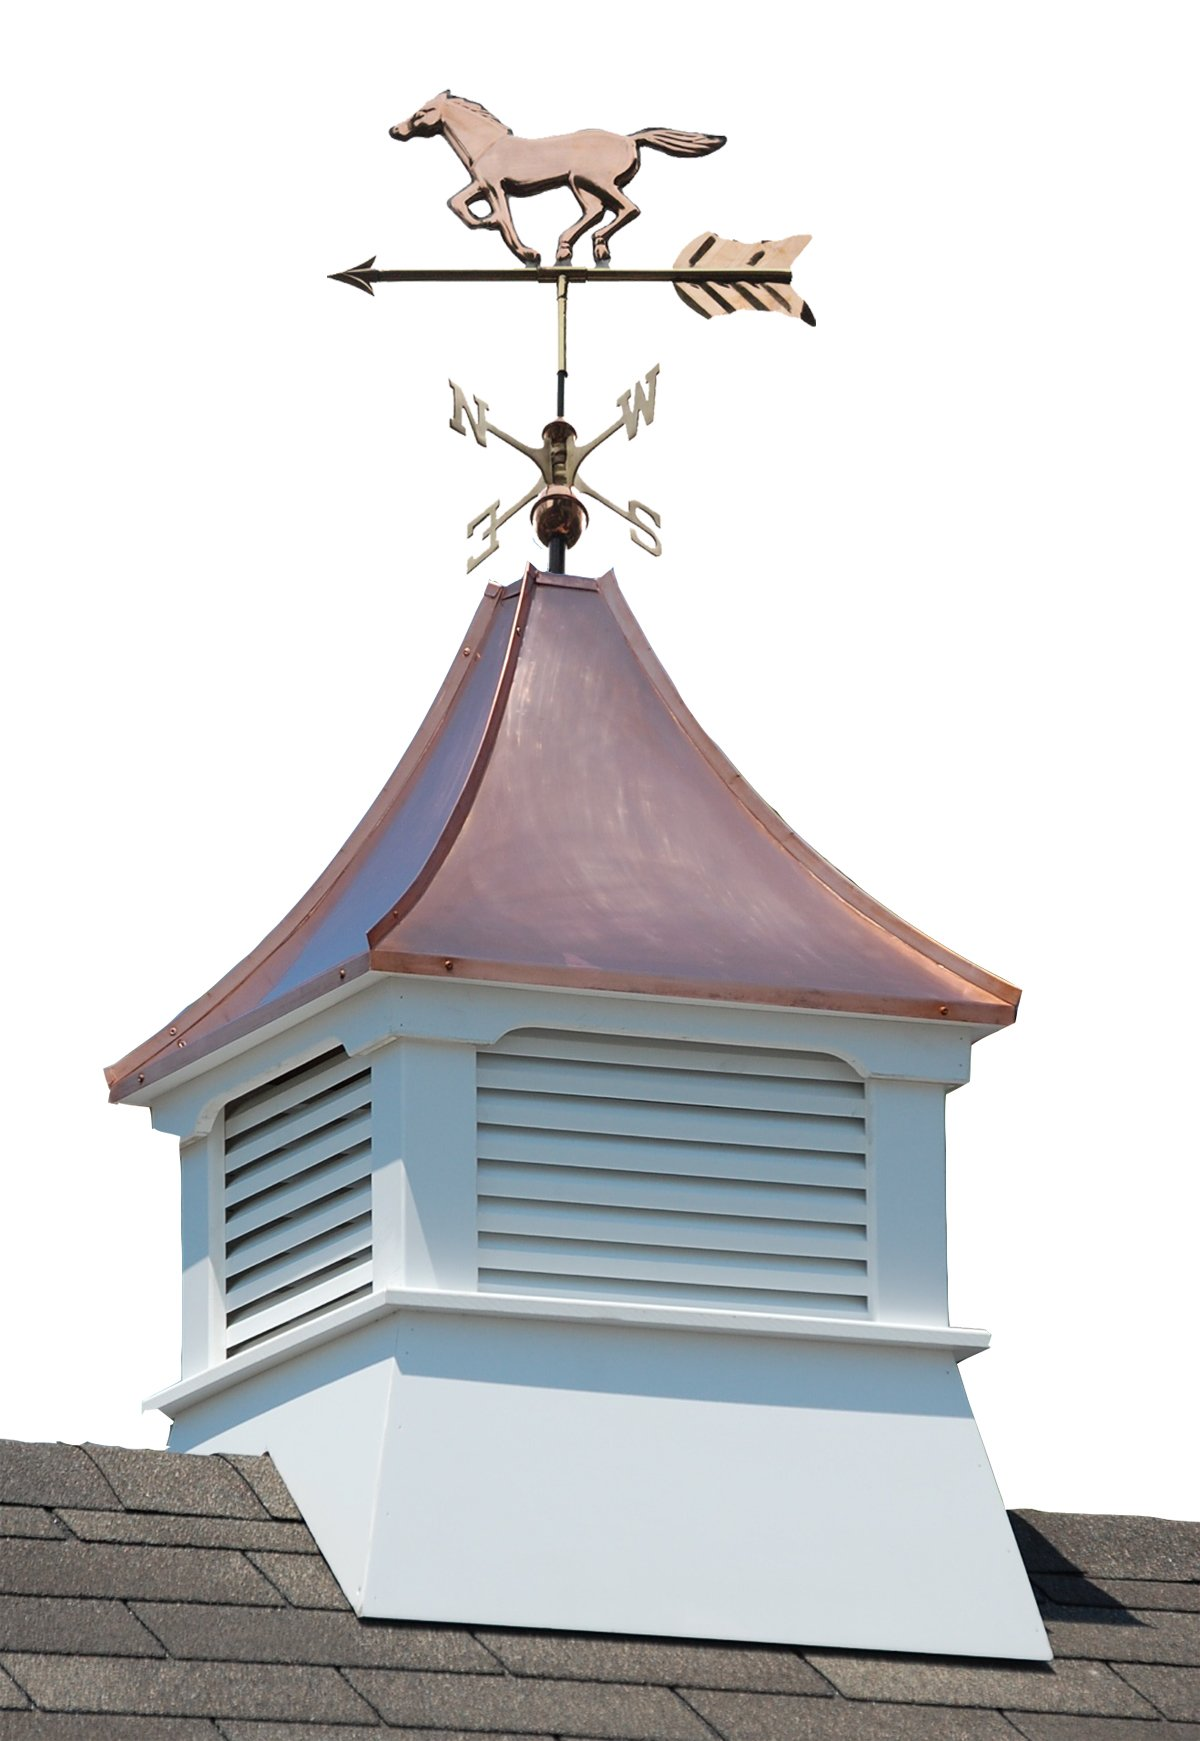 Accentua Olympia Cupola with Horse Weathervane by Accentua